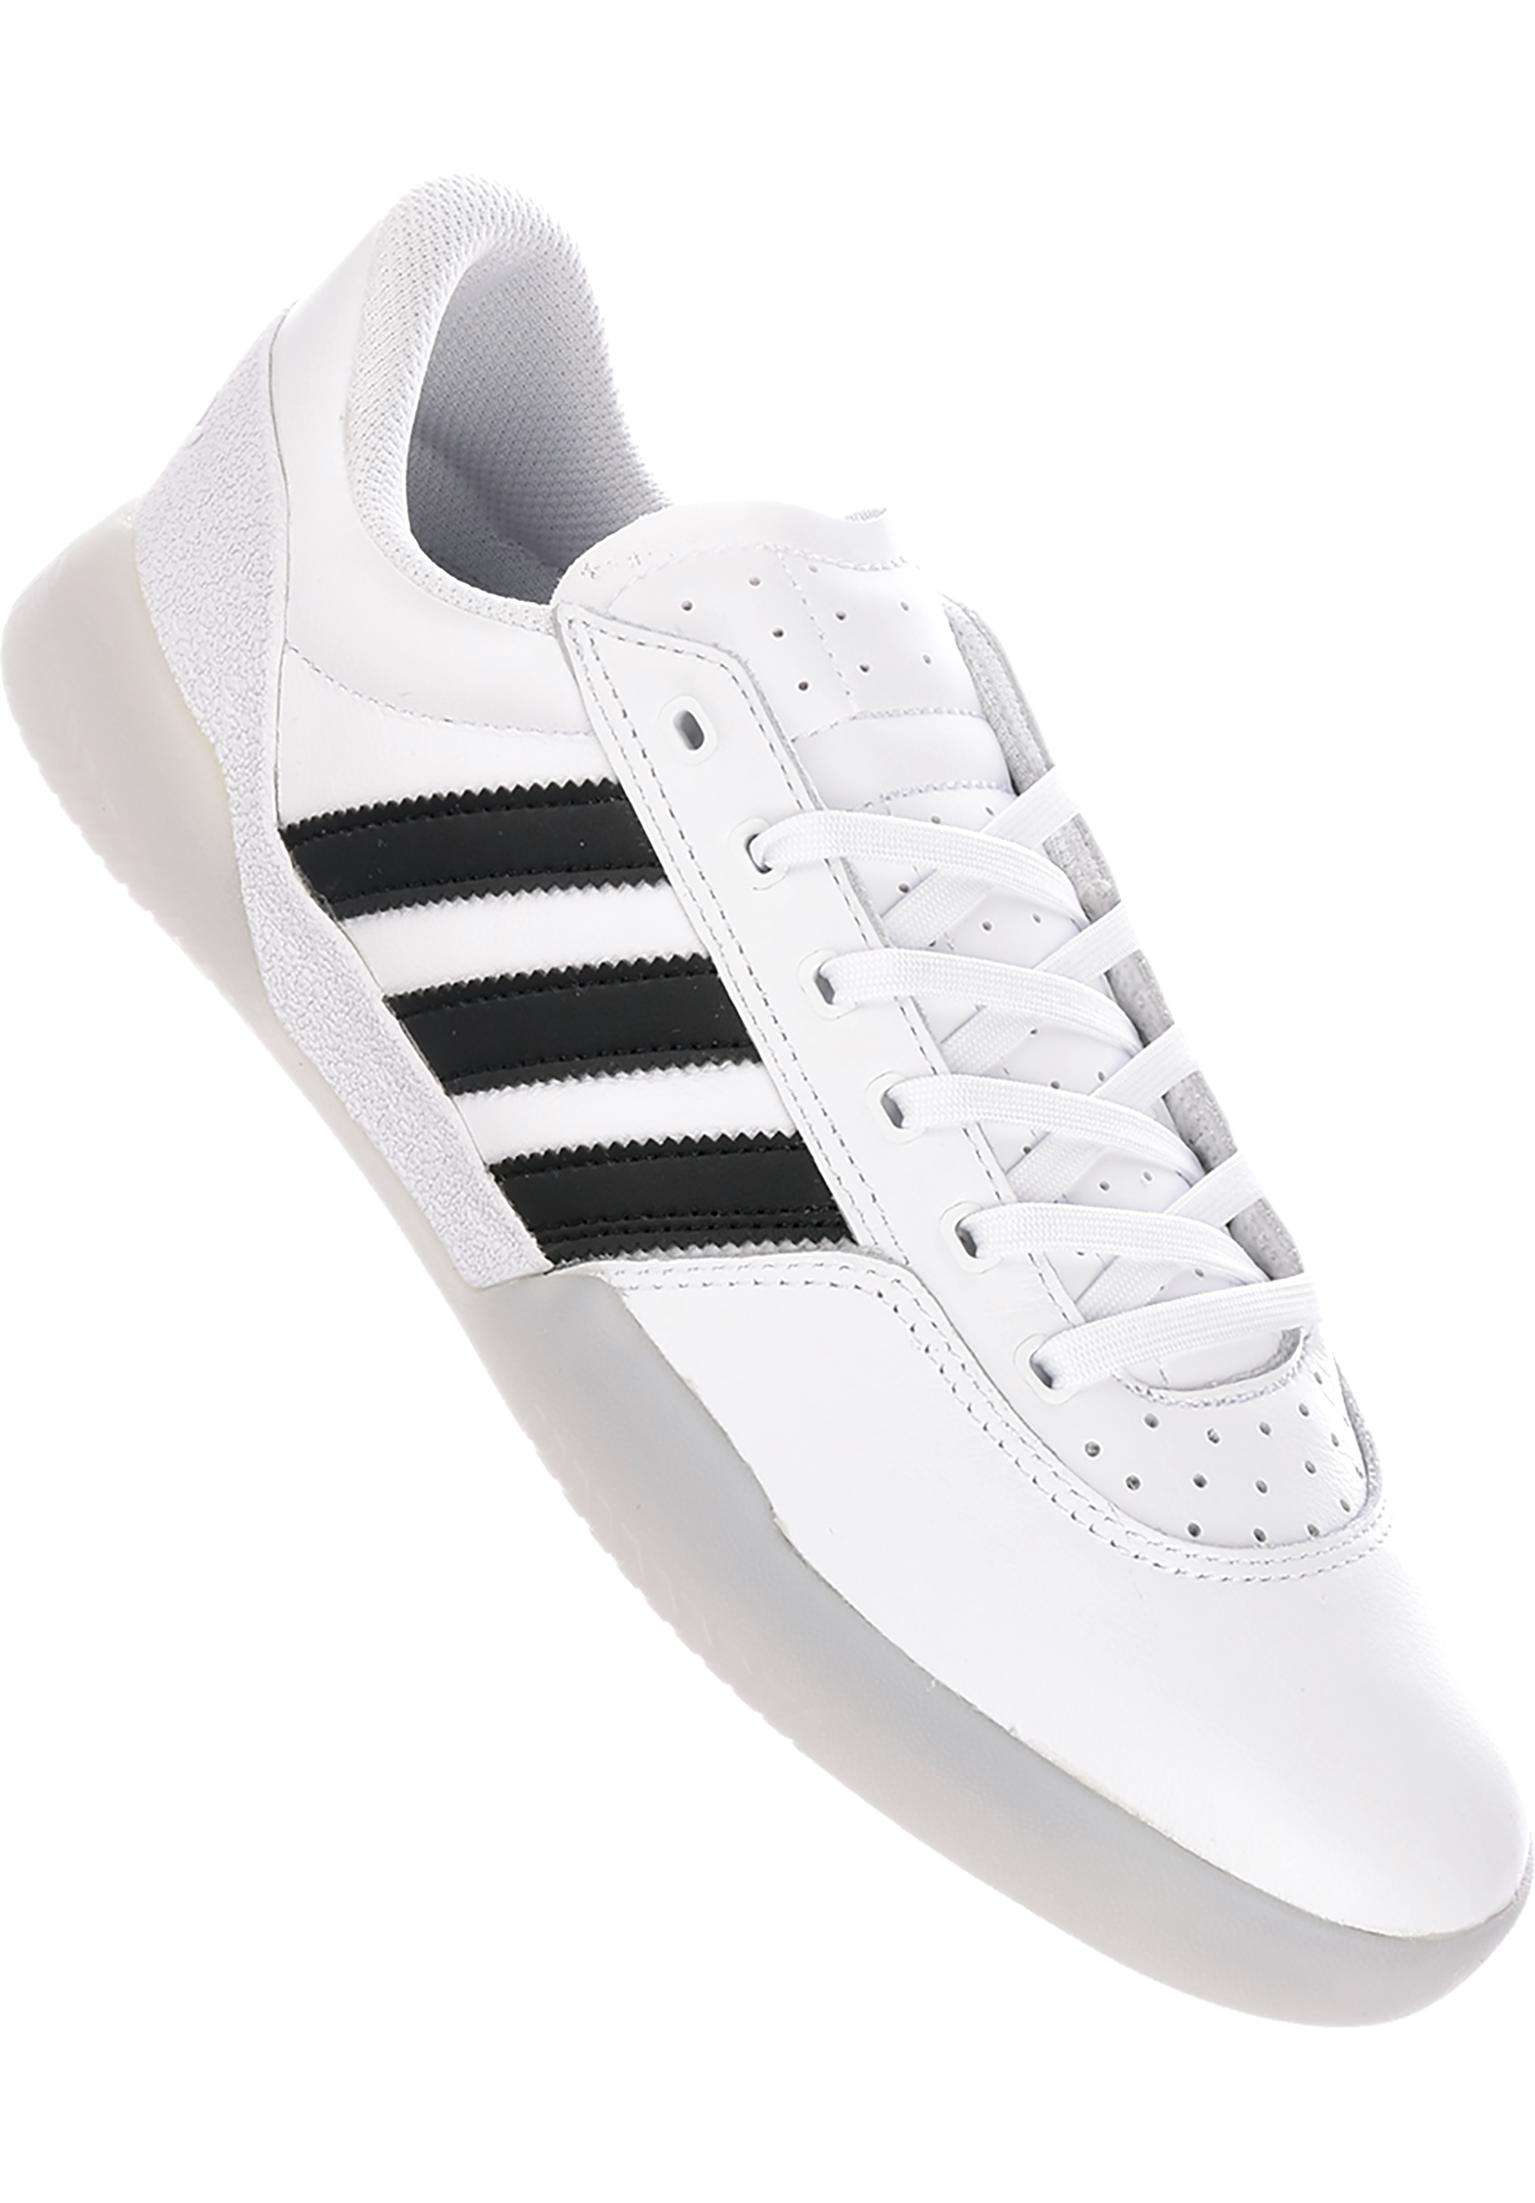 cheap for discount e5bb6 92bc7 City Cup adidas-skateboarding All Shoes in white-coreblack-grey for Men   Titus